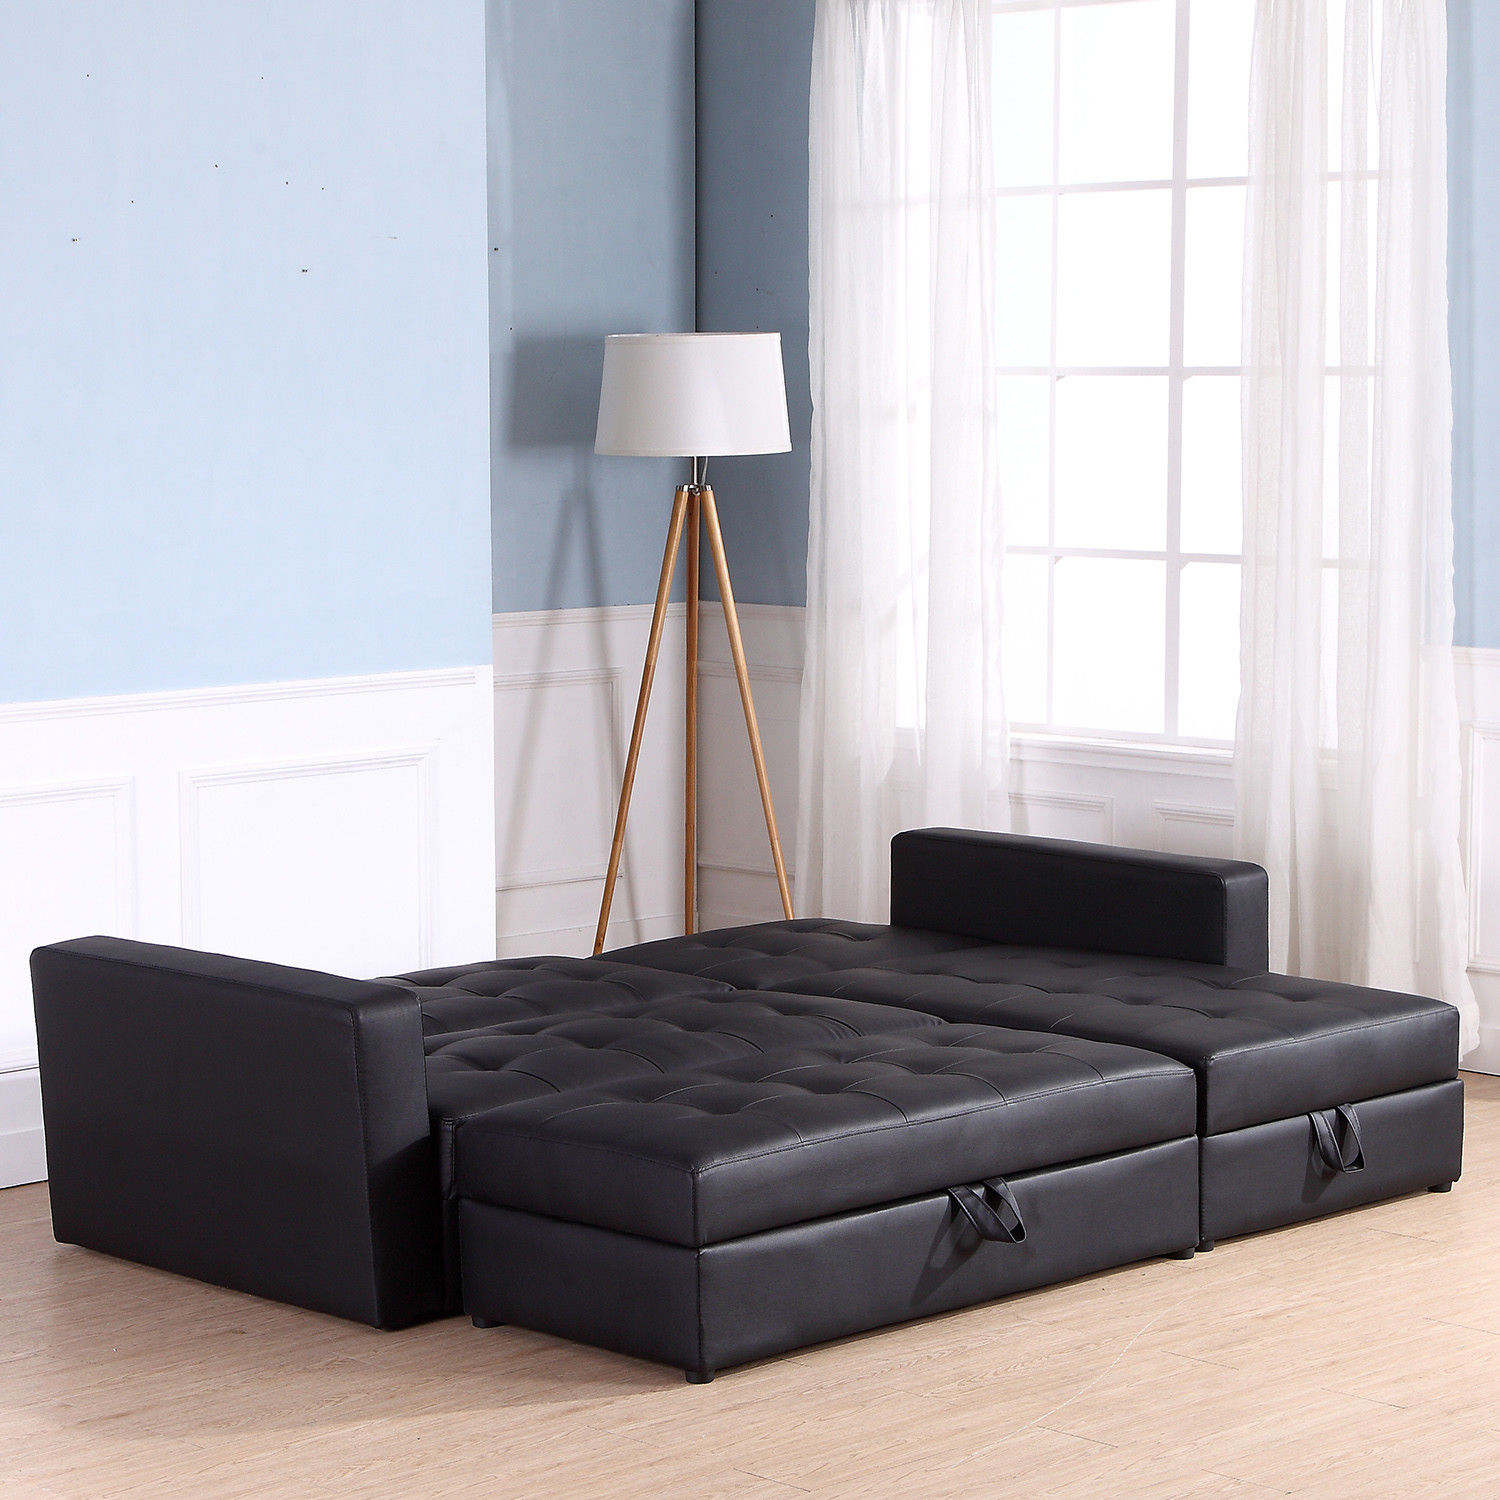 Corner Sofa Bed Under 300: Sofa Bed Storage Sleeper Chaise Loveseat Couch Sectional